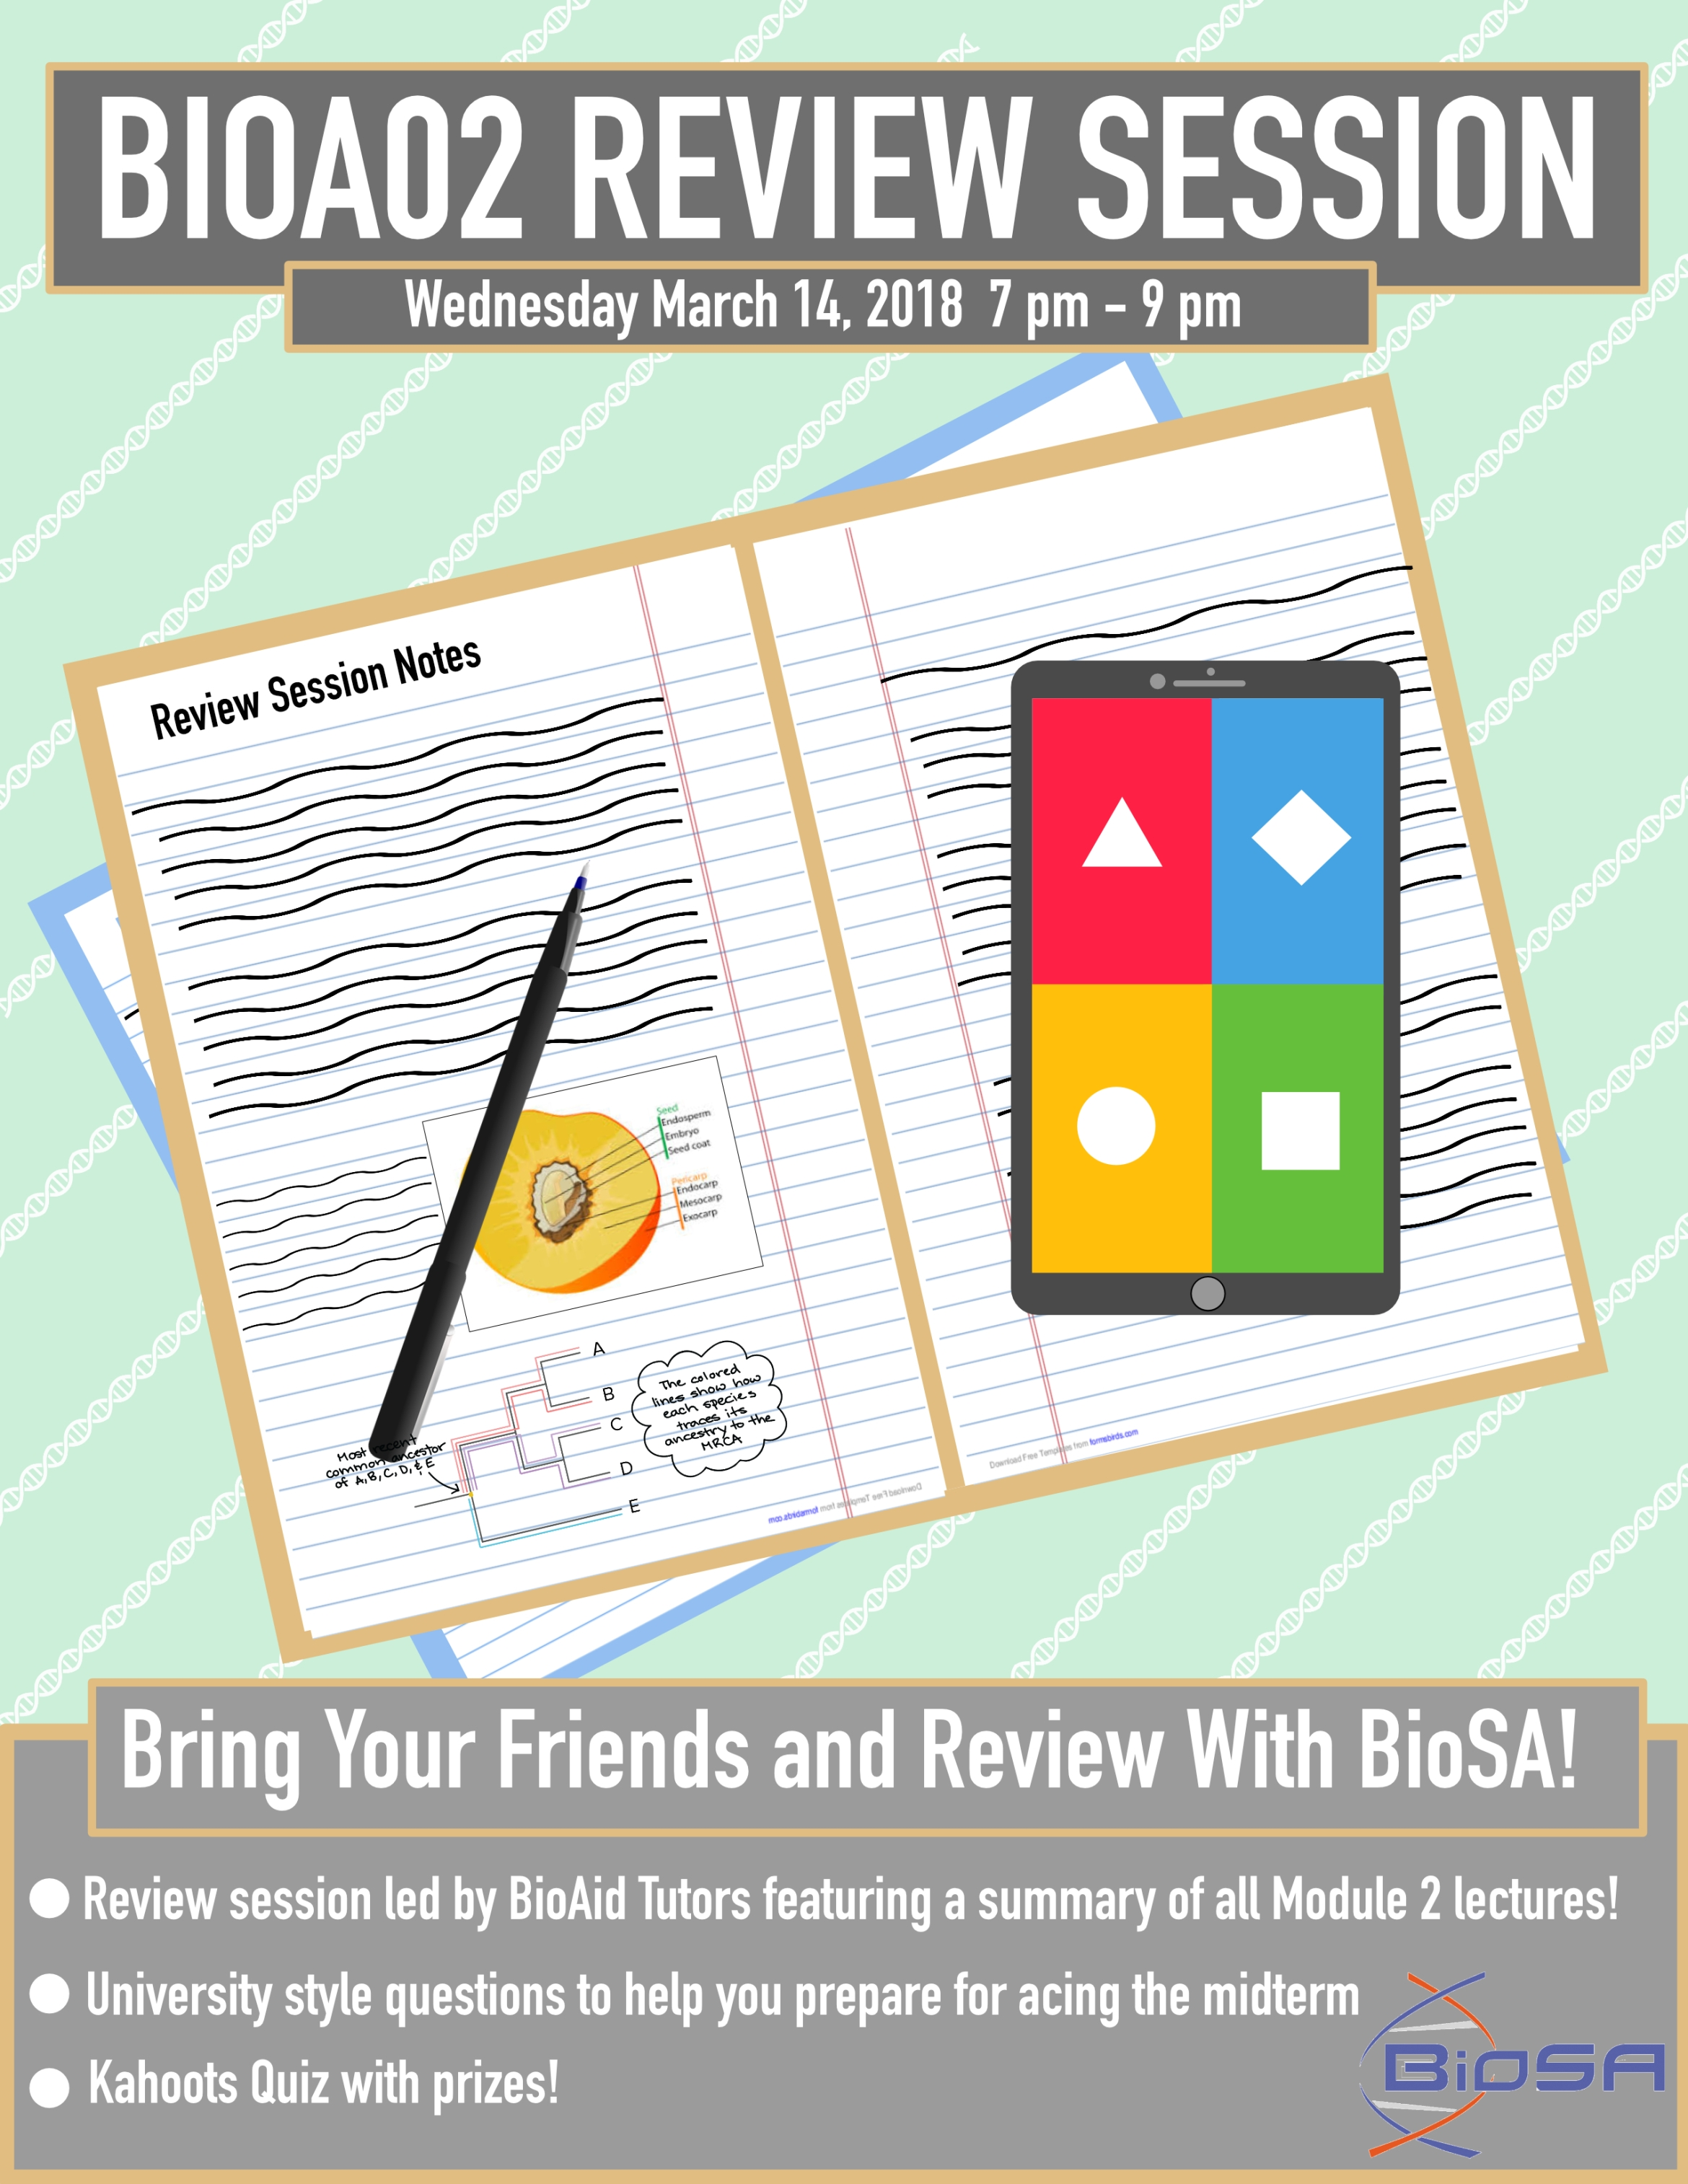 Bioa02 review session poster